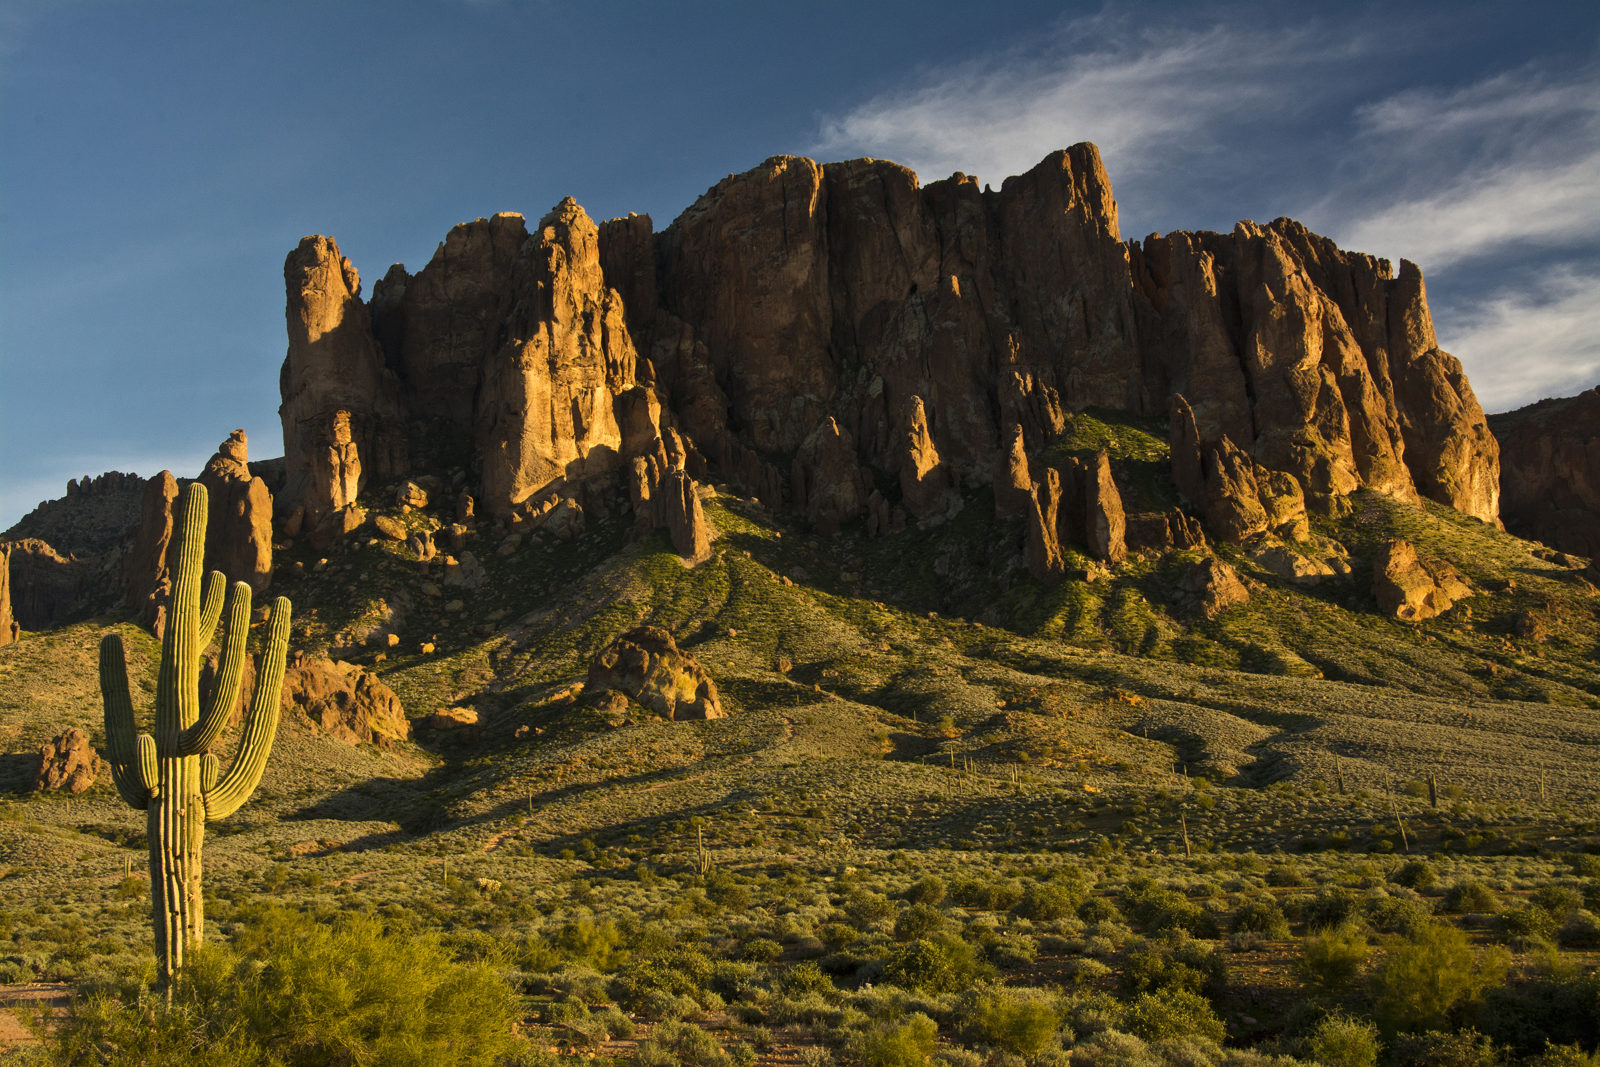 Sunset on Superstition Mountain